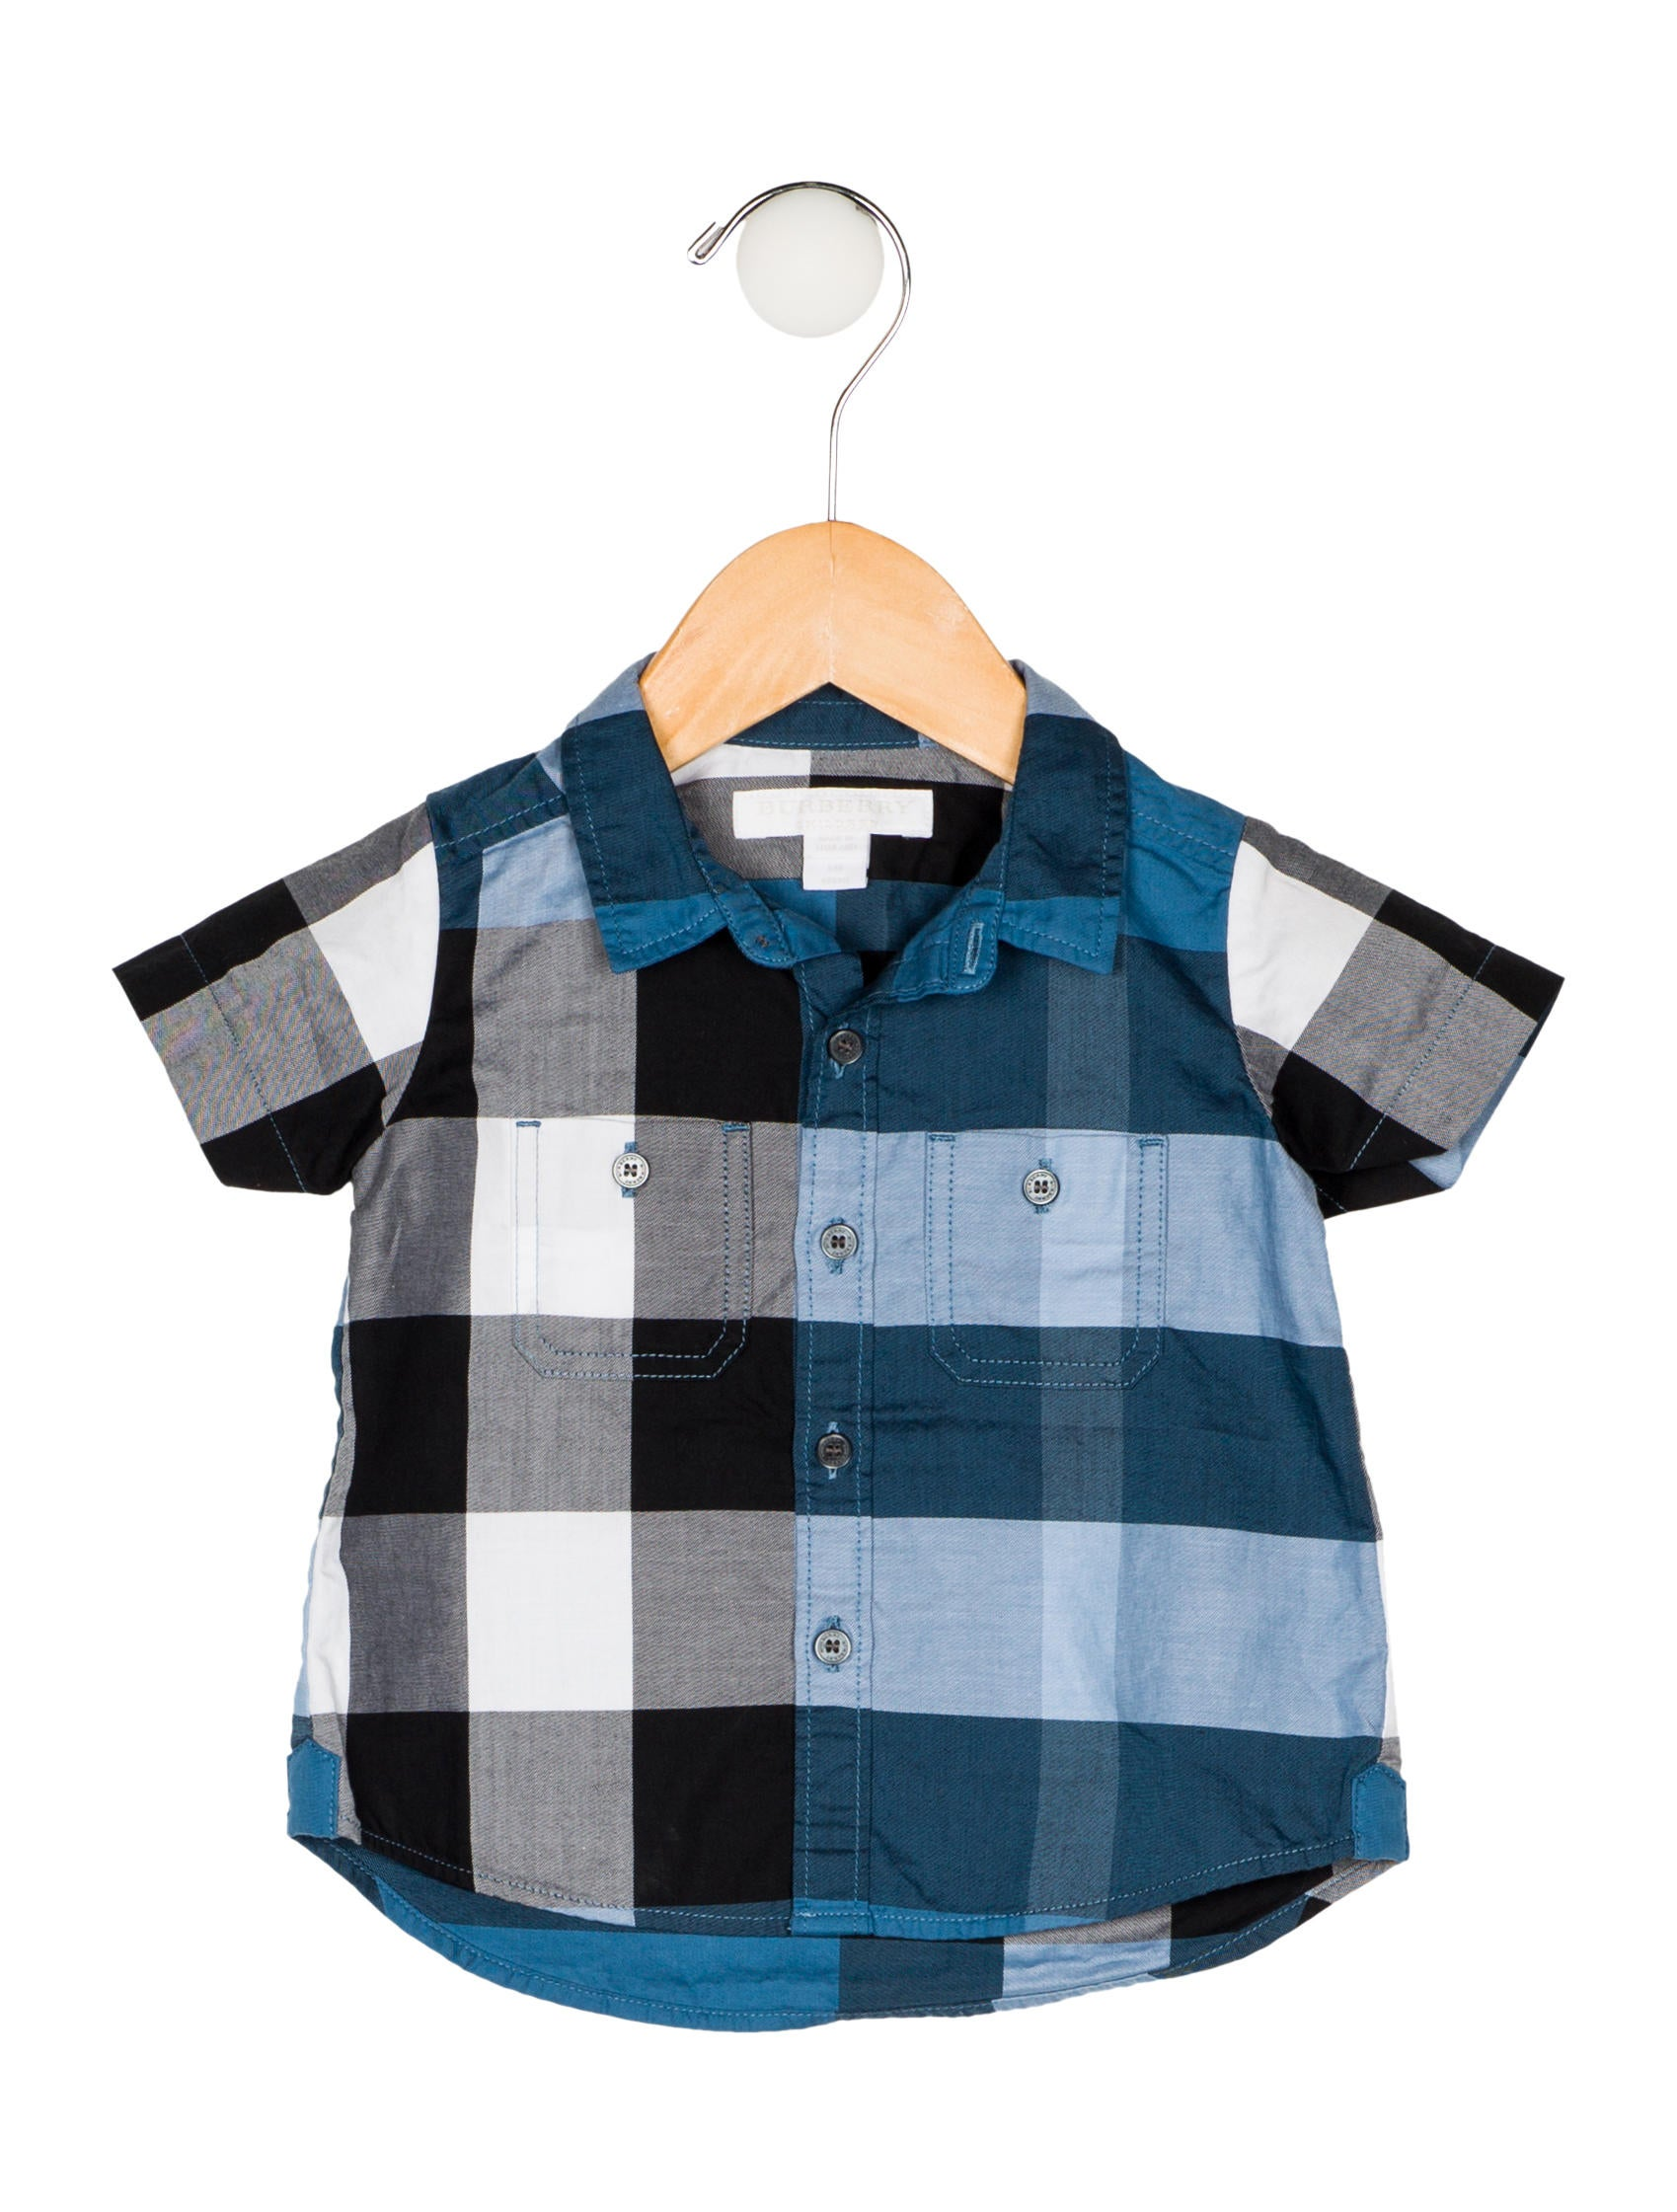 7fe86ca6 Burberry Boys' Exploded Check Print Shirt - Boys - BUR103129 | The ...